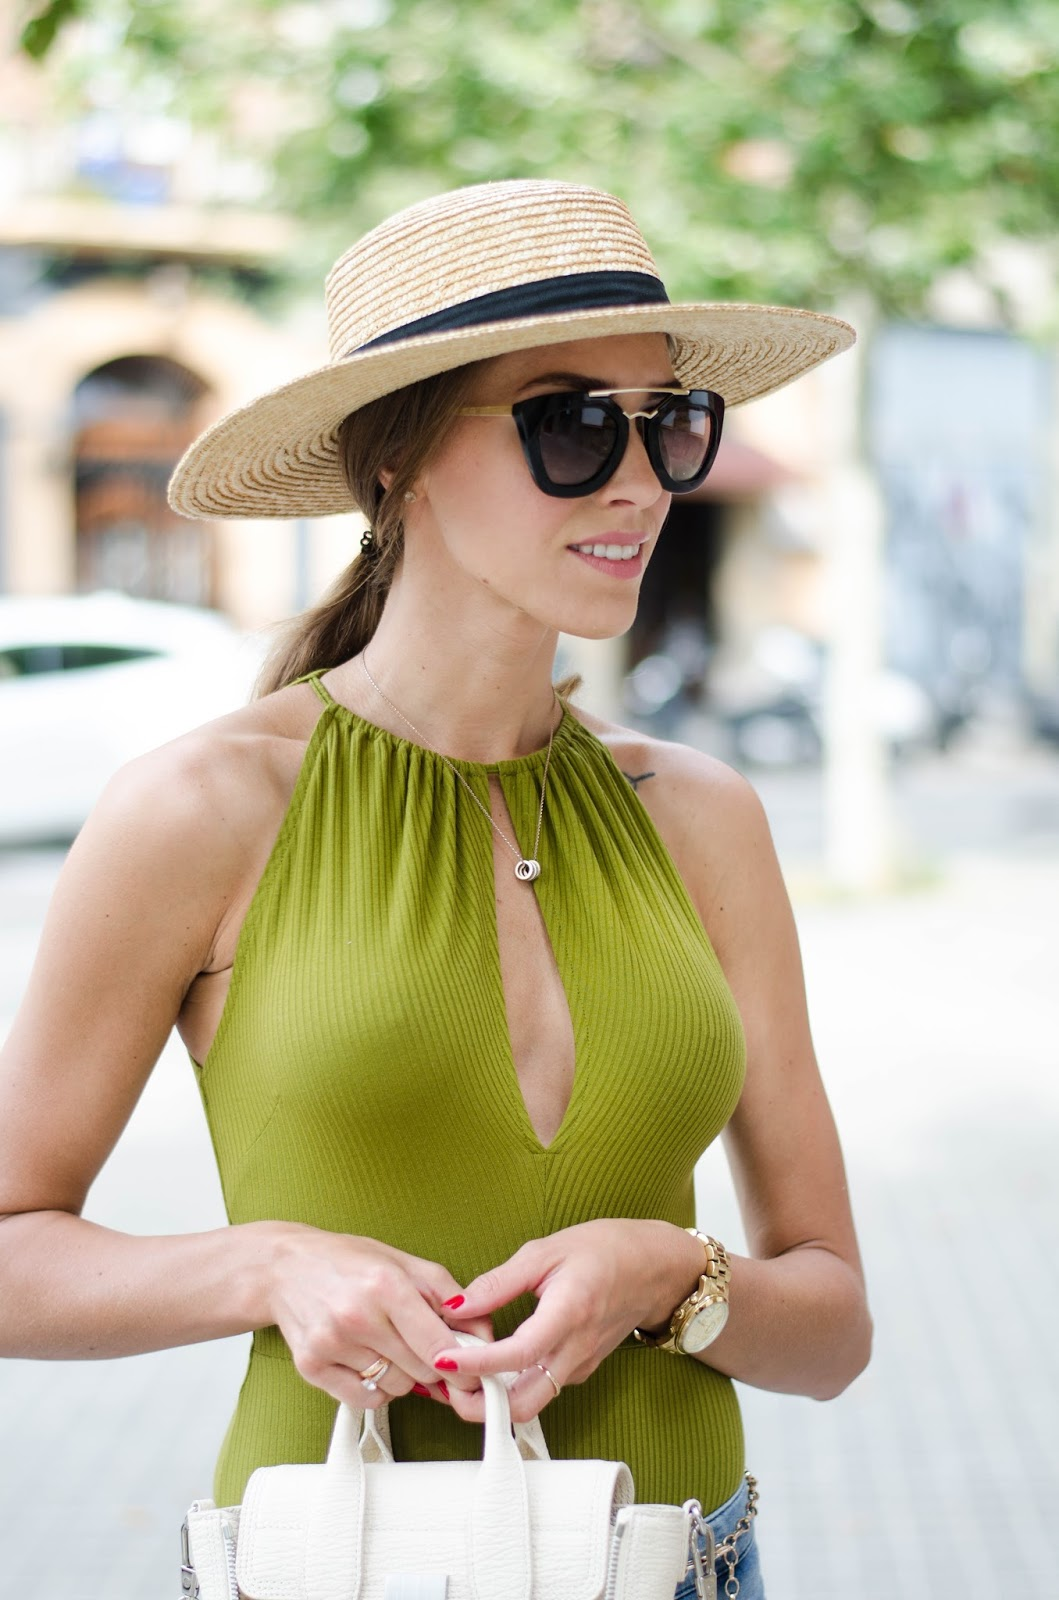 green body straw hat summer outfit